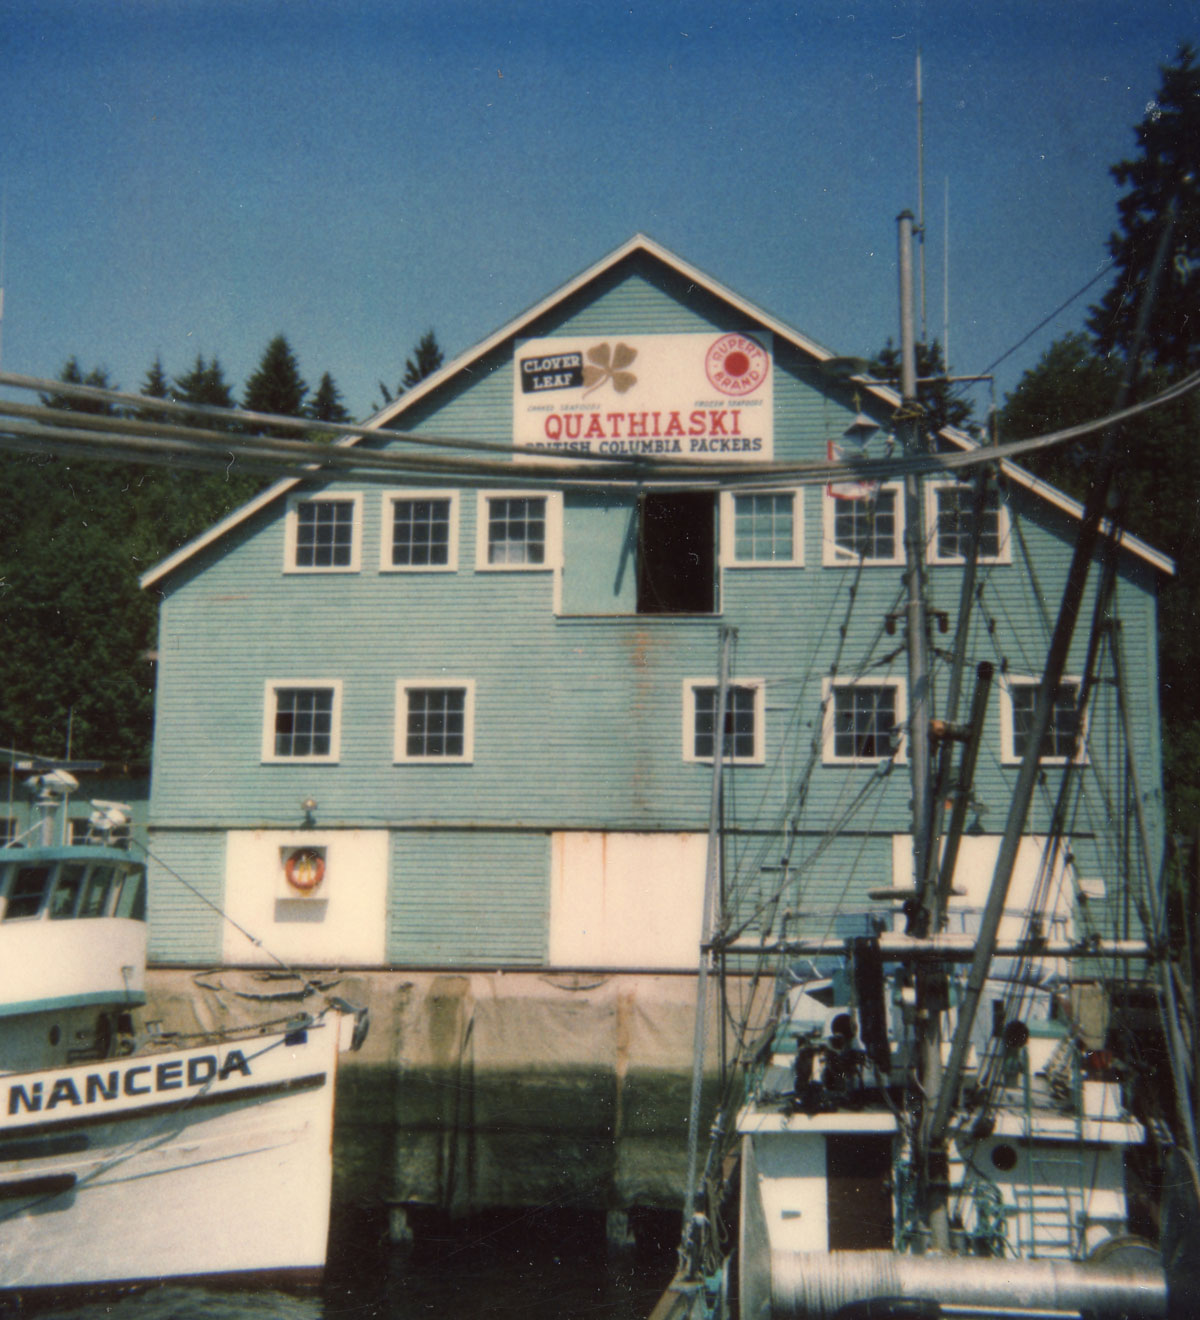 Blue building with two rows of large windows facing the water. Fishing boats in the foreground.